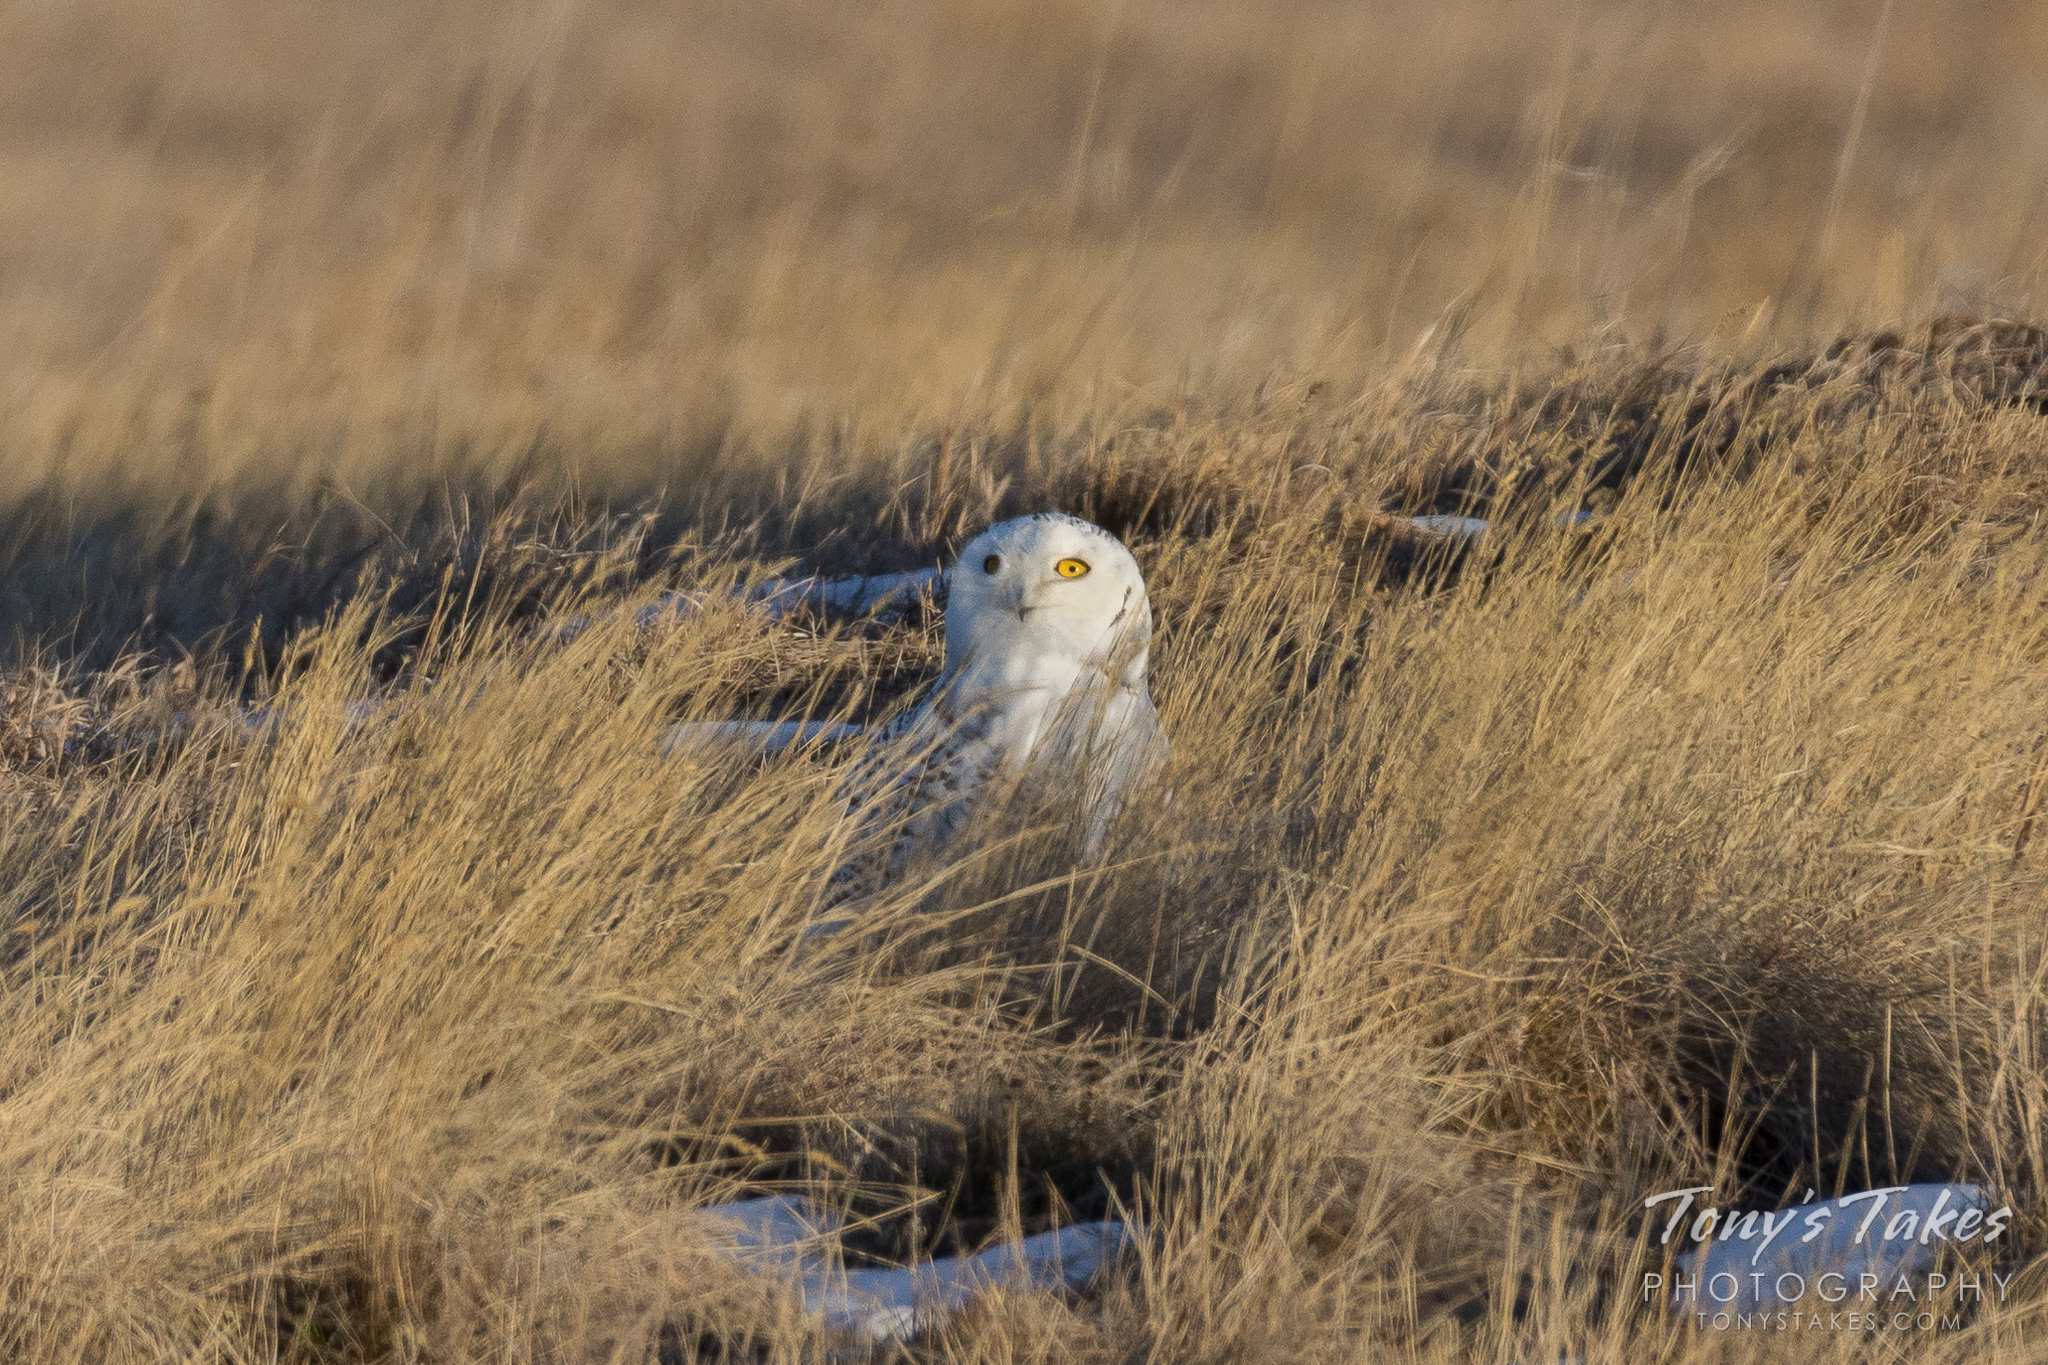 A Snowy Owl keeps watch from the grasses or a suburban park near Denver, Colorado.  (© Tony's Takes)